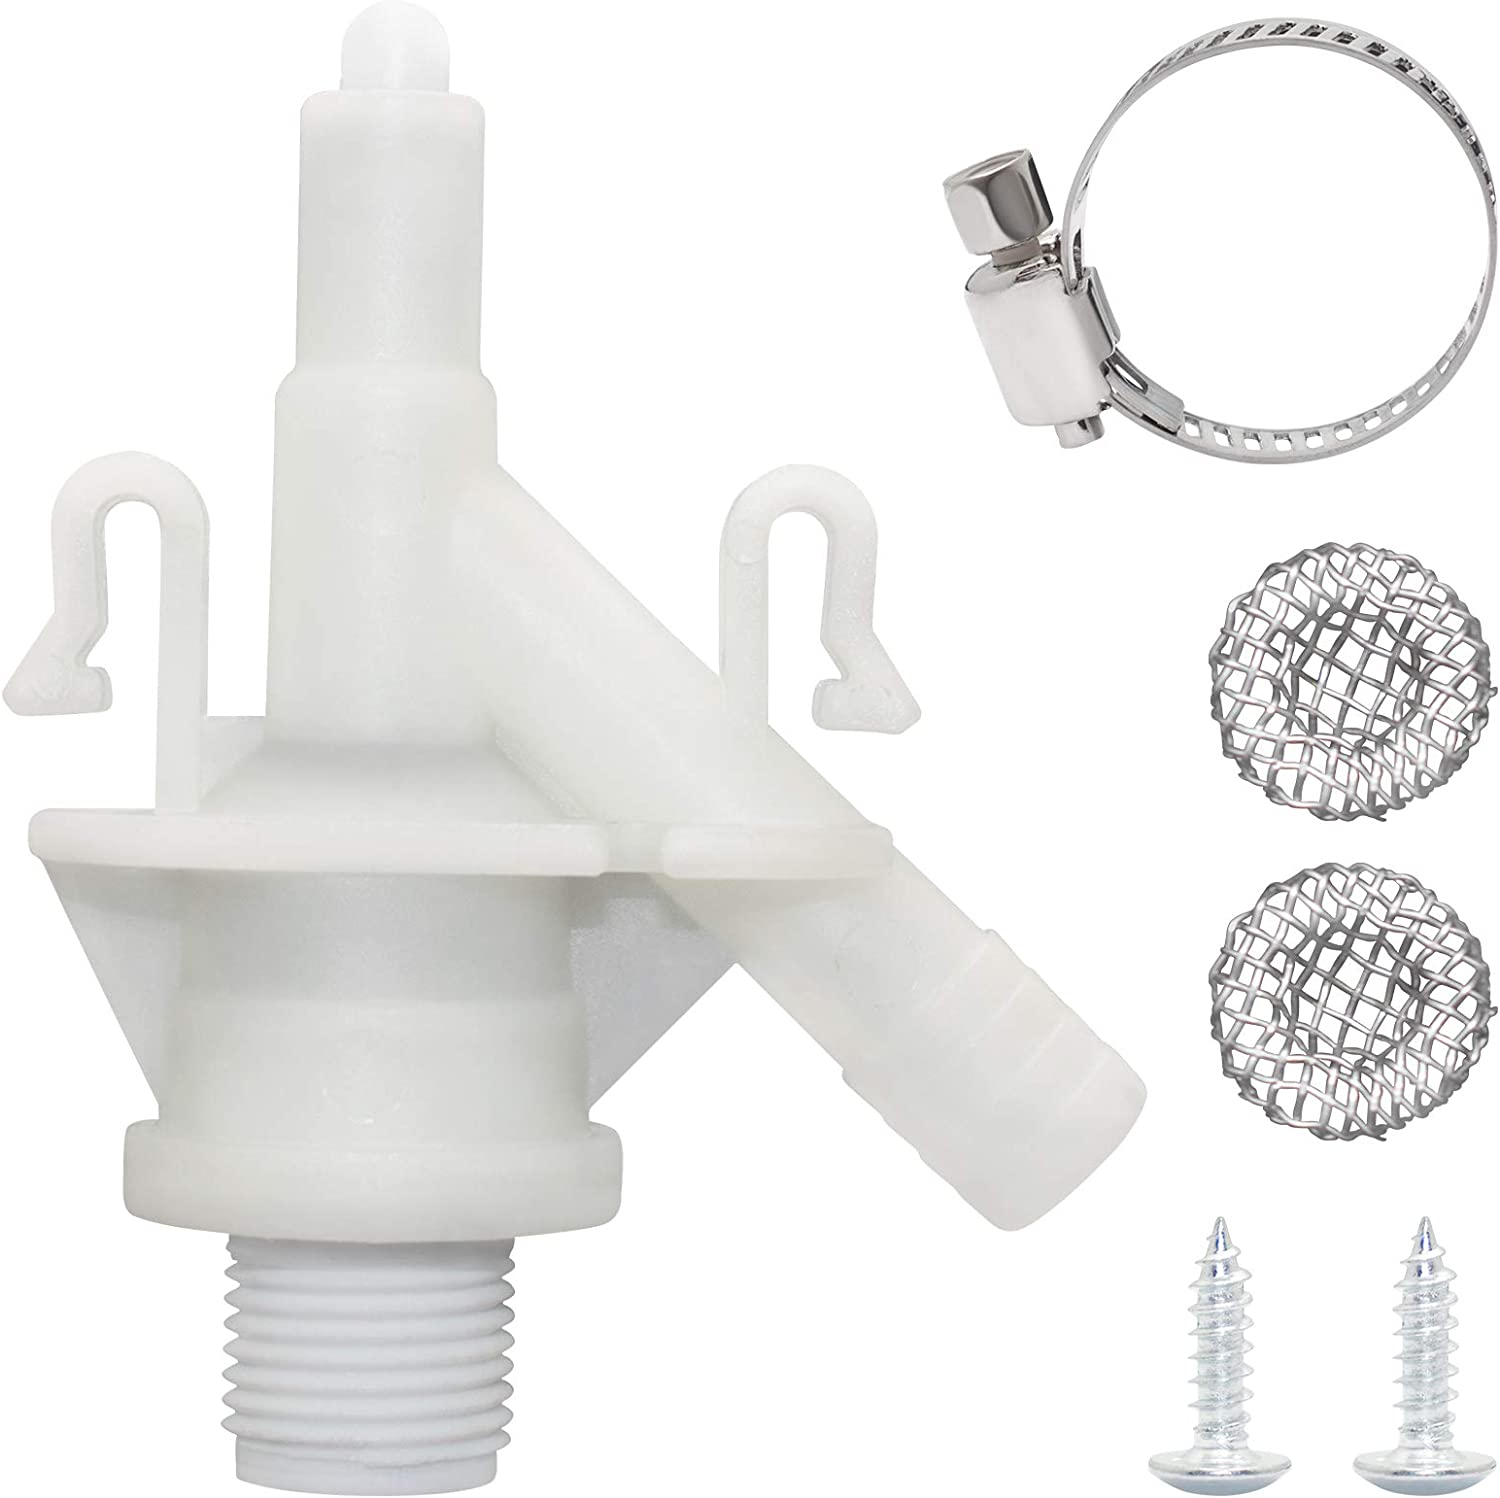 Sikawai Toilet Classic Water favorite Valve Kit with Plastic Durable D Compatible